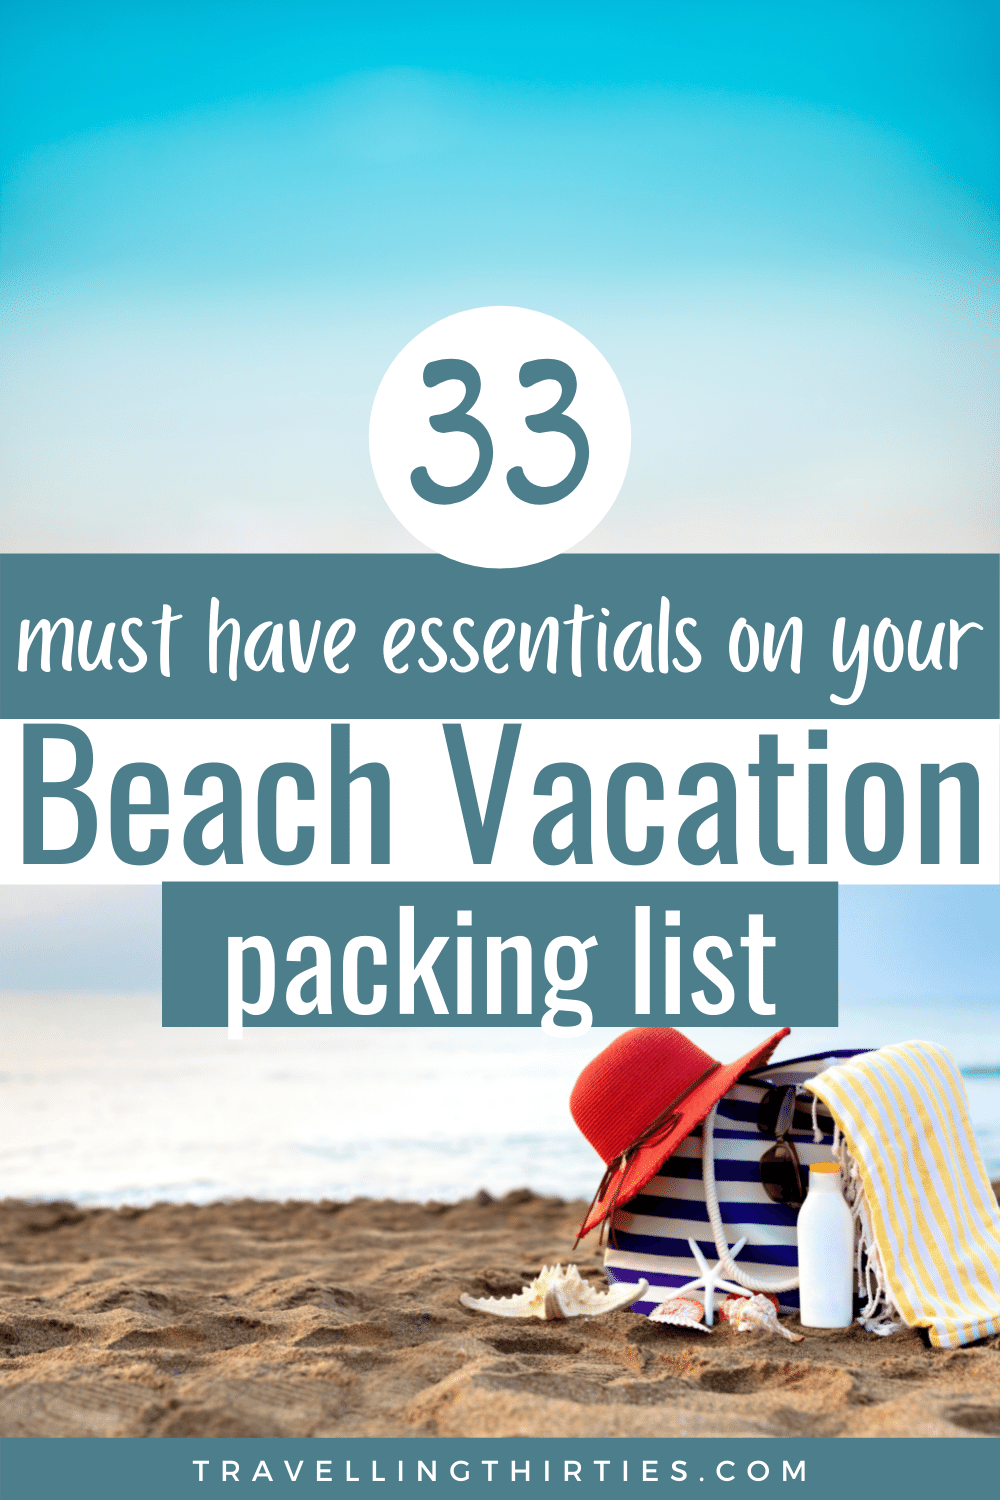 A pinterest graphic for a beach vacation packing list